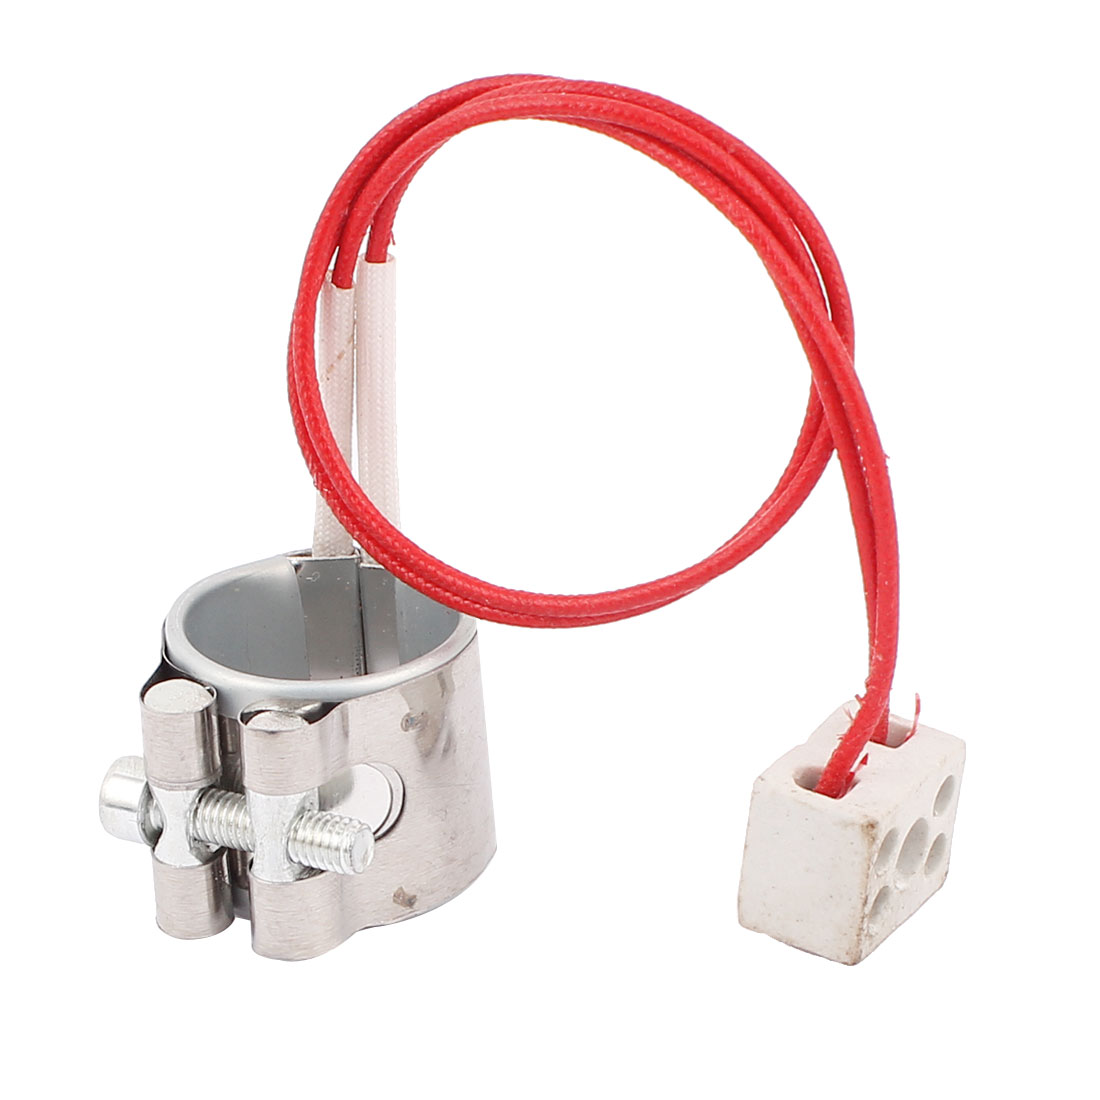 AC 220V 80W Injection Machine Ceramic Heating Element Metal Band Heater 30mm x 30mm